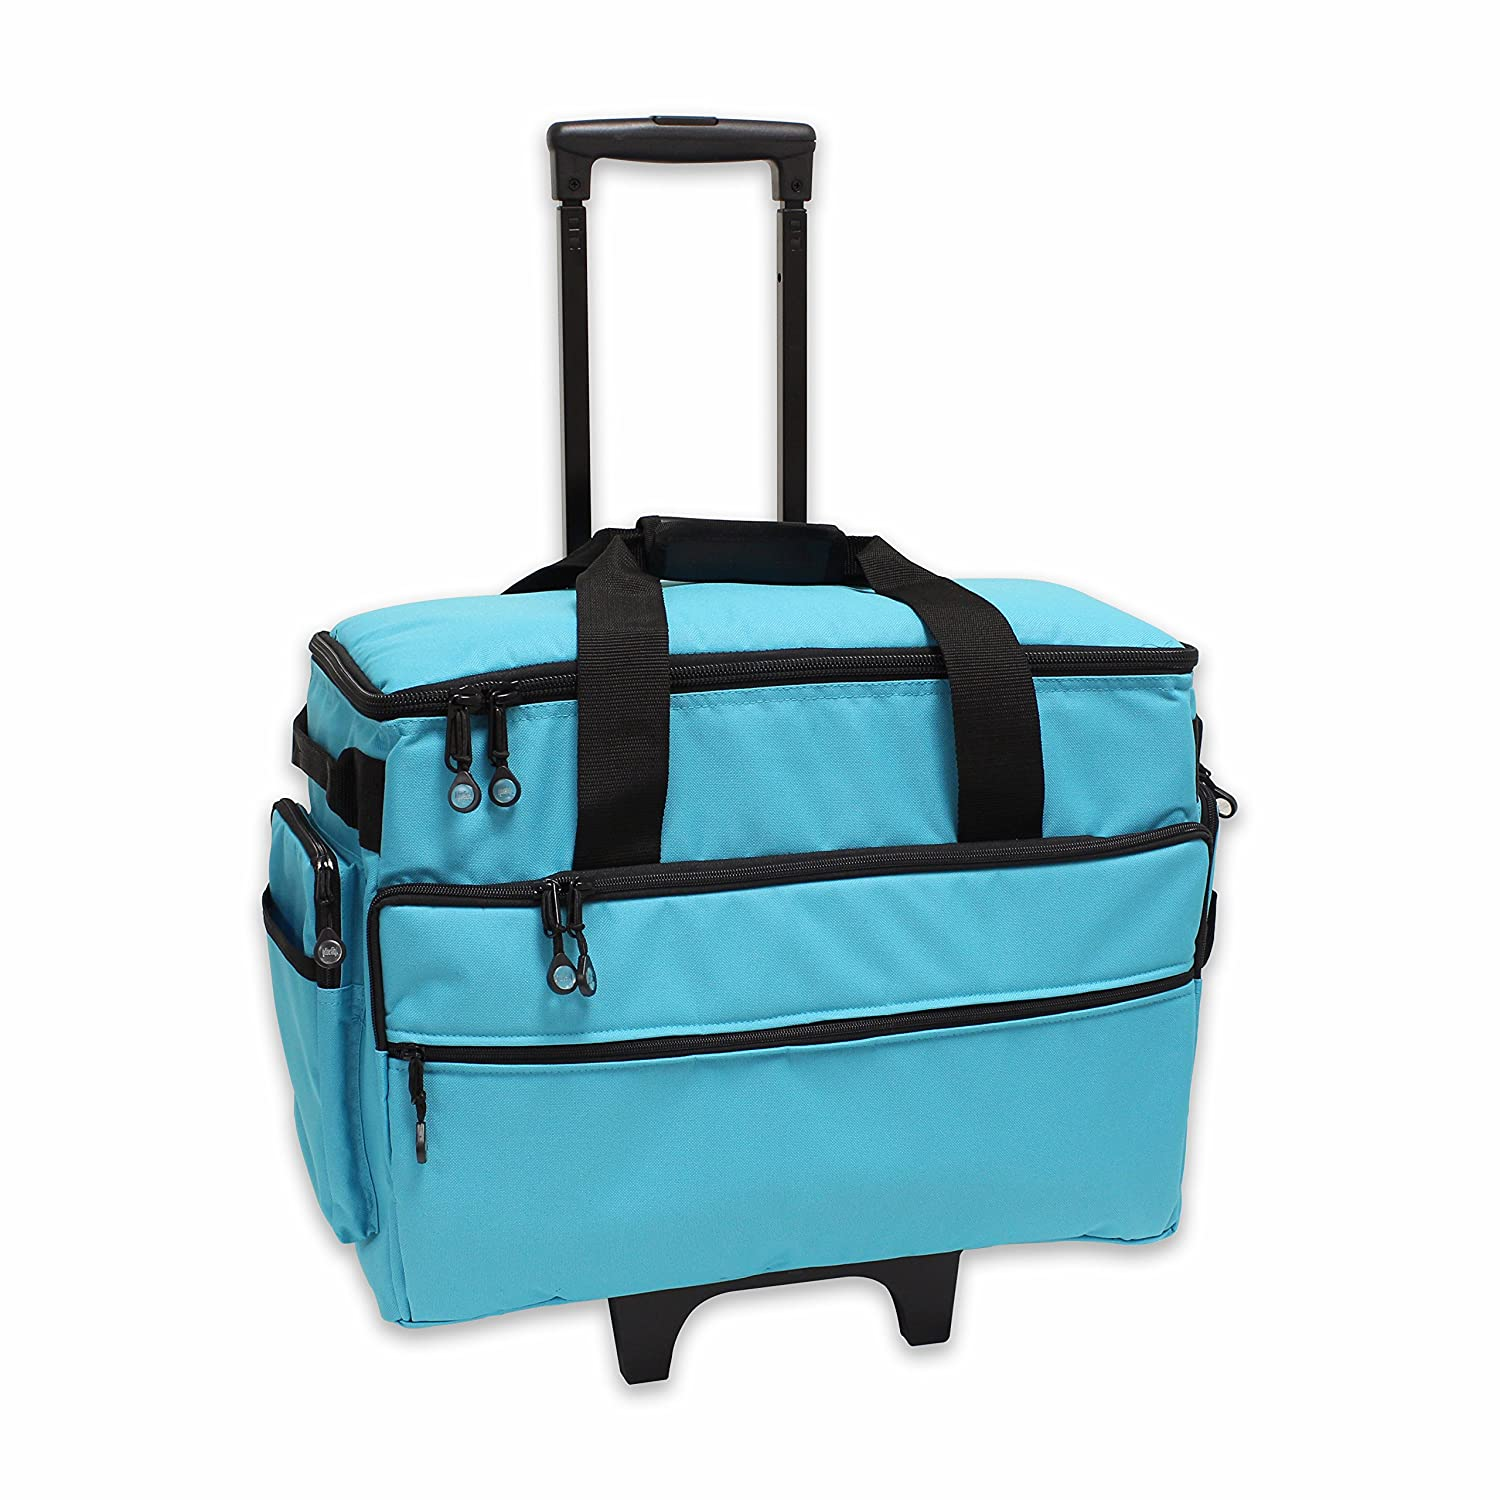 BlueFig TB19 Sewing Machine Carrier/Project Bag/Notion Bag (Aqua) 4336998270